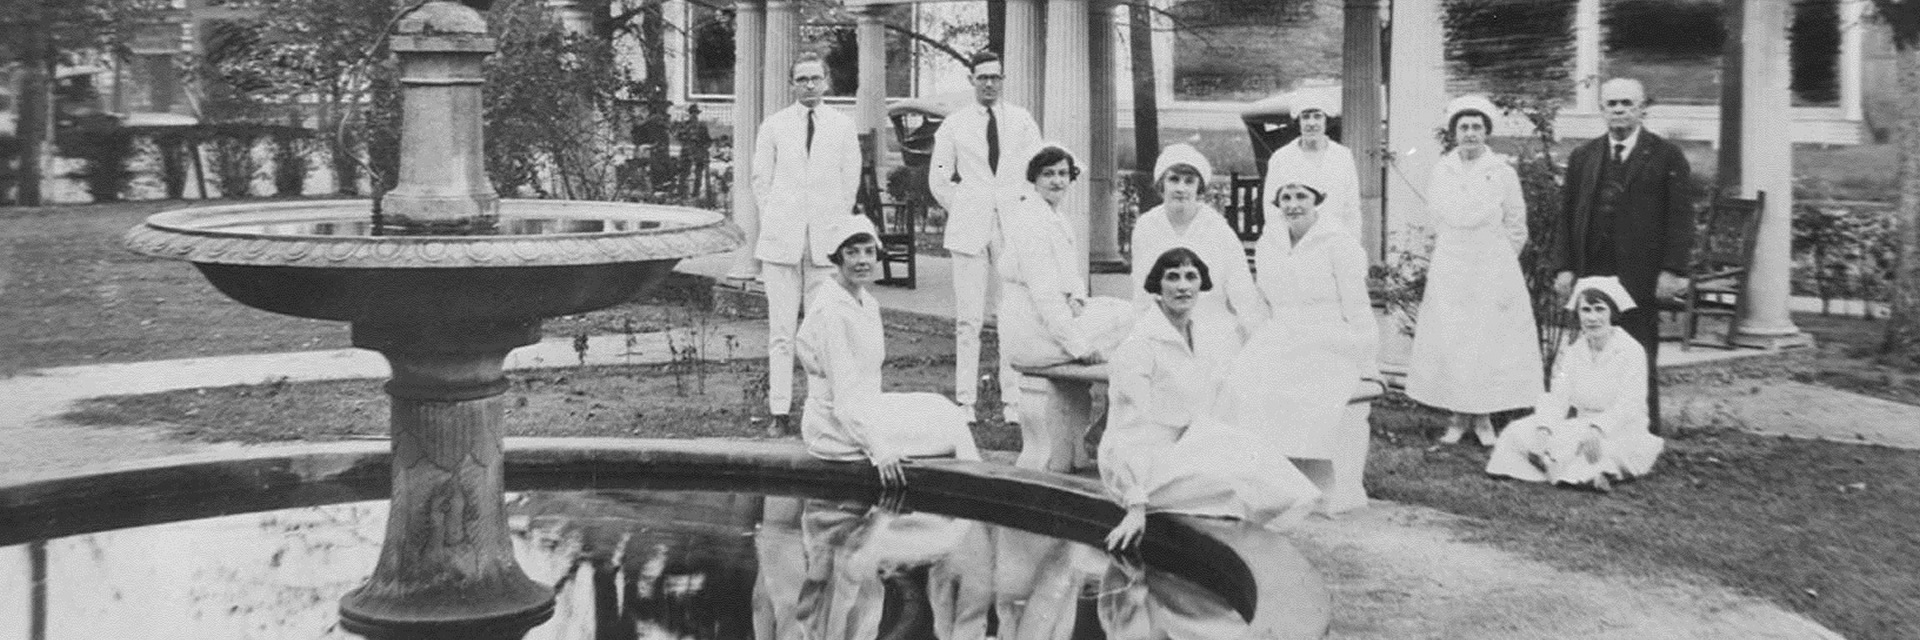 nurses and doctors 1925